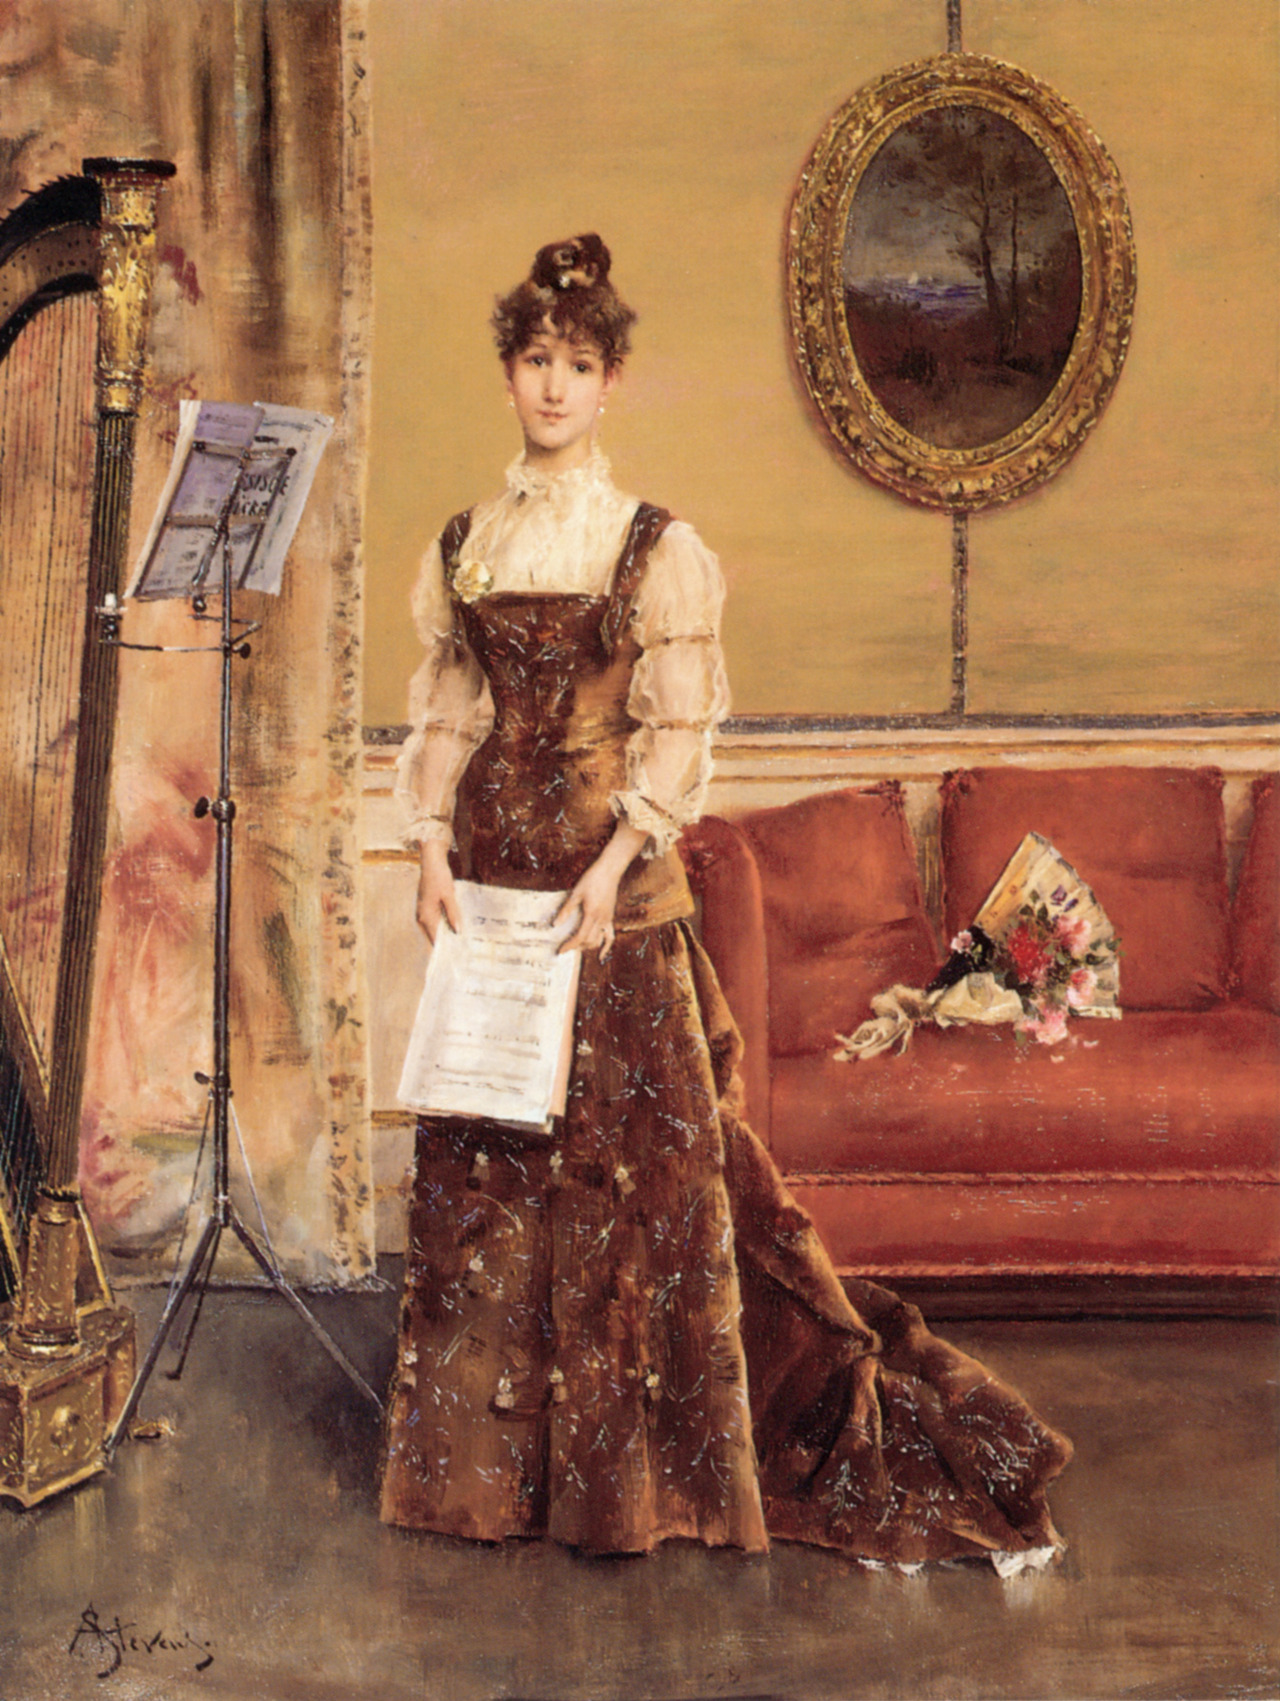 Women's Harp (La Femme la Harpe). Alfred Stevens (Belgian, Romanticism, 1823-1906). Oil on panel. The focus here, as in other Stevens' paintings of the time, is on the fashionable lady (and patron) and the interior. The harp can hardly be seen. During the 1860s, Stevens became an immensely successful painter, known for his paintings of elegant modern women. His exhibits at the Salons in Paris and Brussels attracted favorable critical attention and buyers.